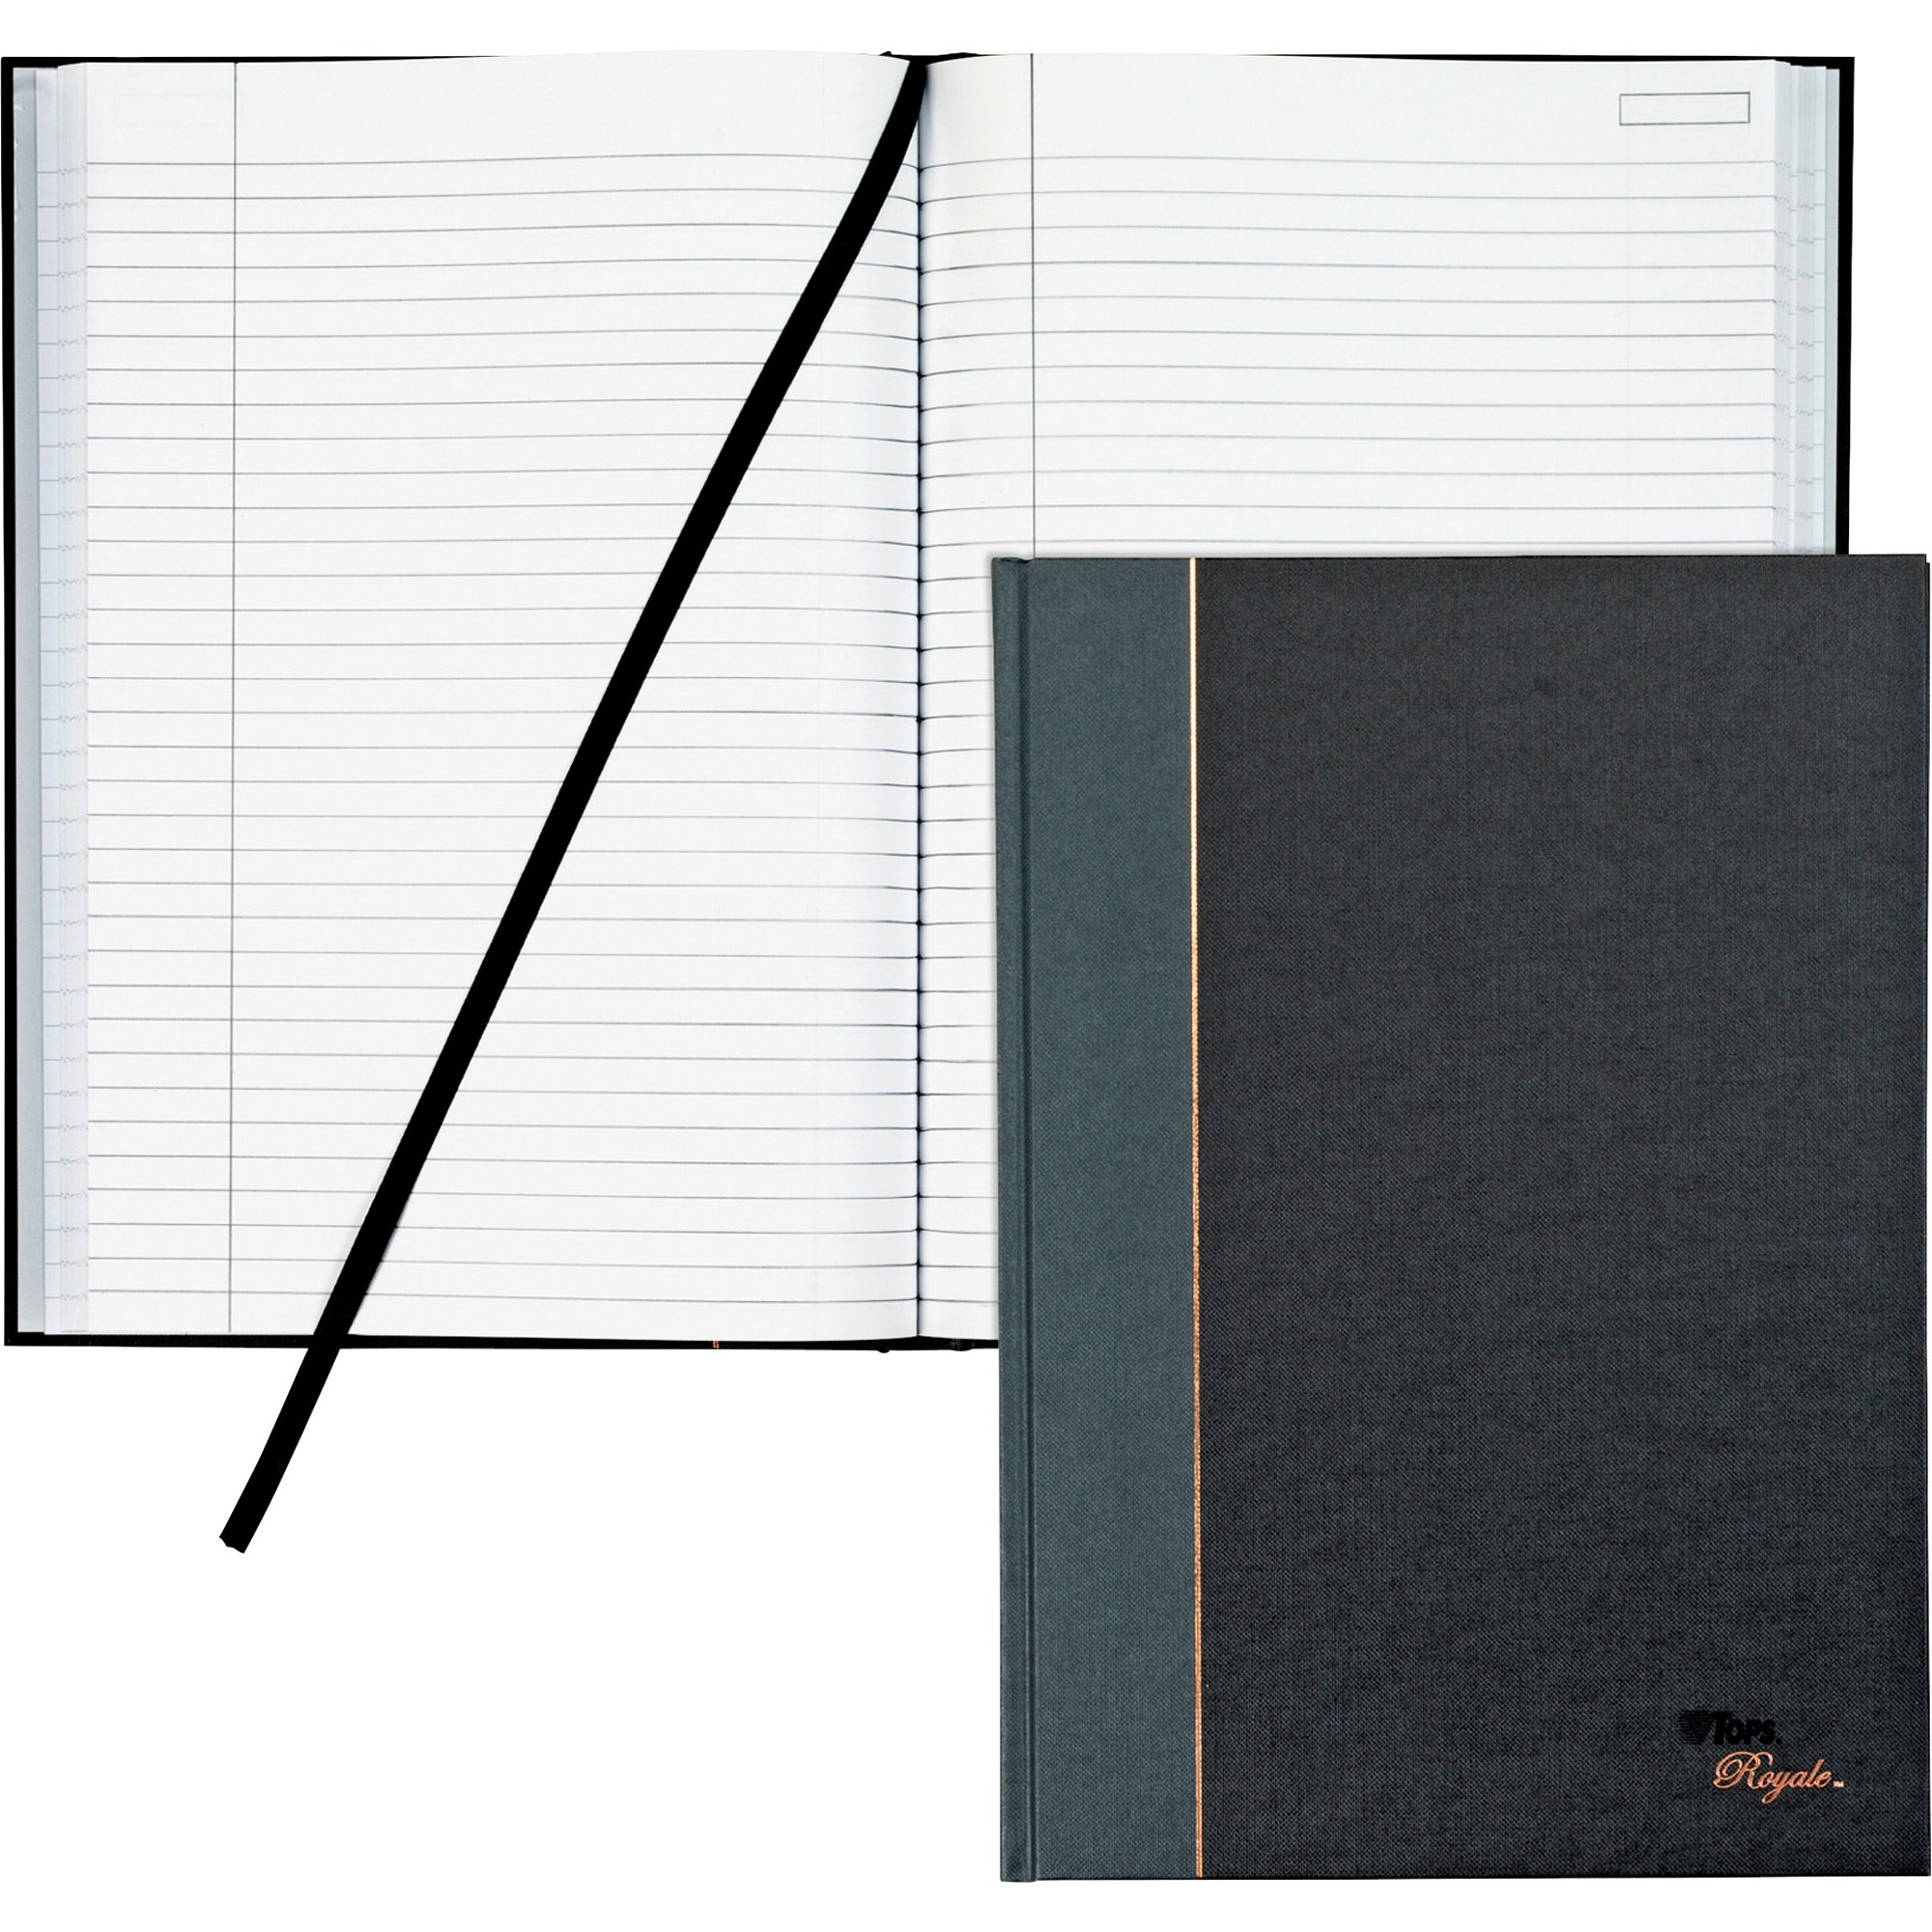 TOPS, TOP25232, Royal Executive Business Notebooks, 1 Each